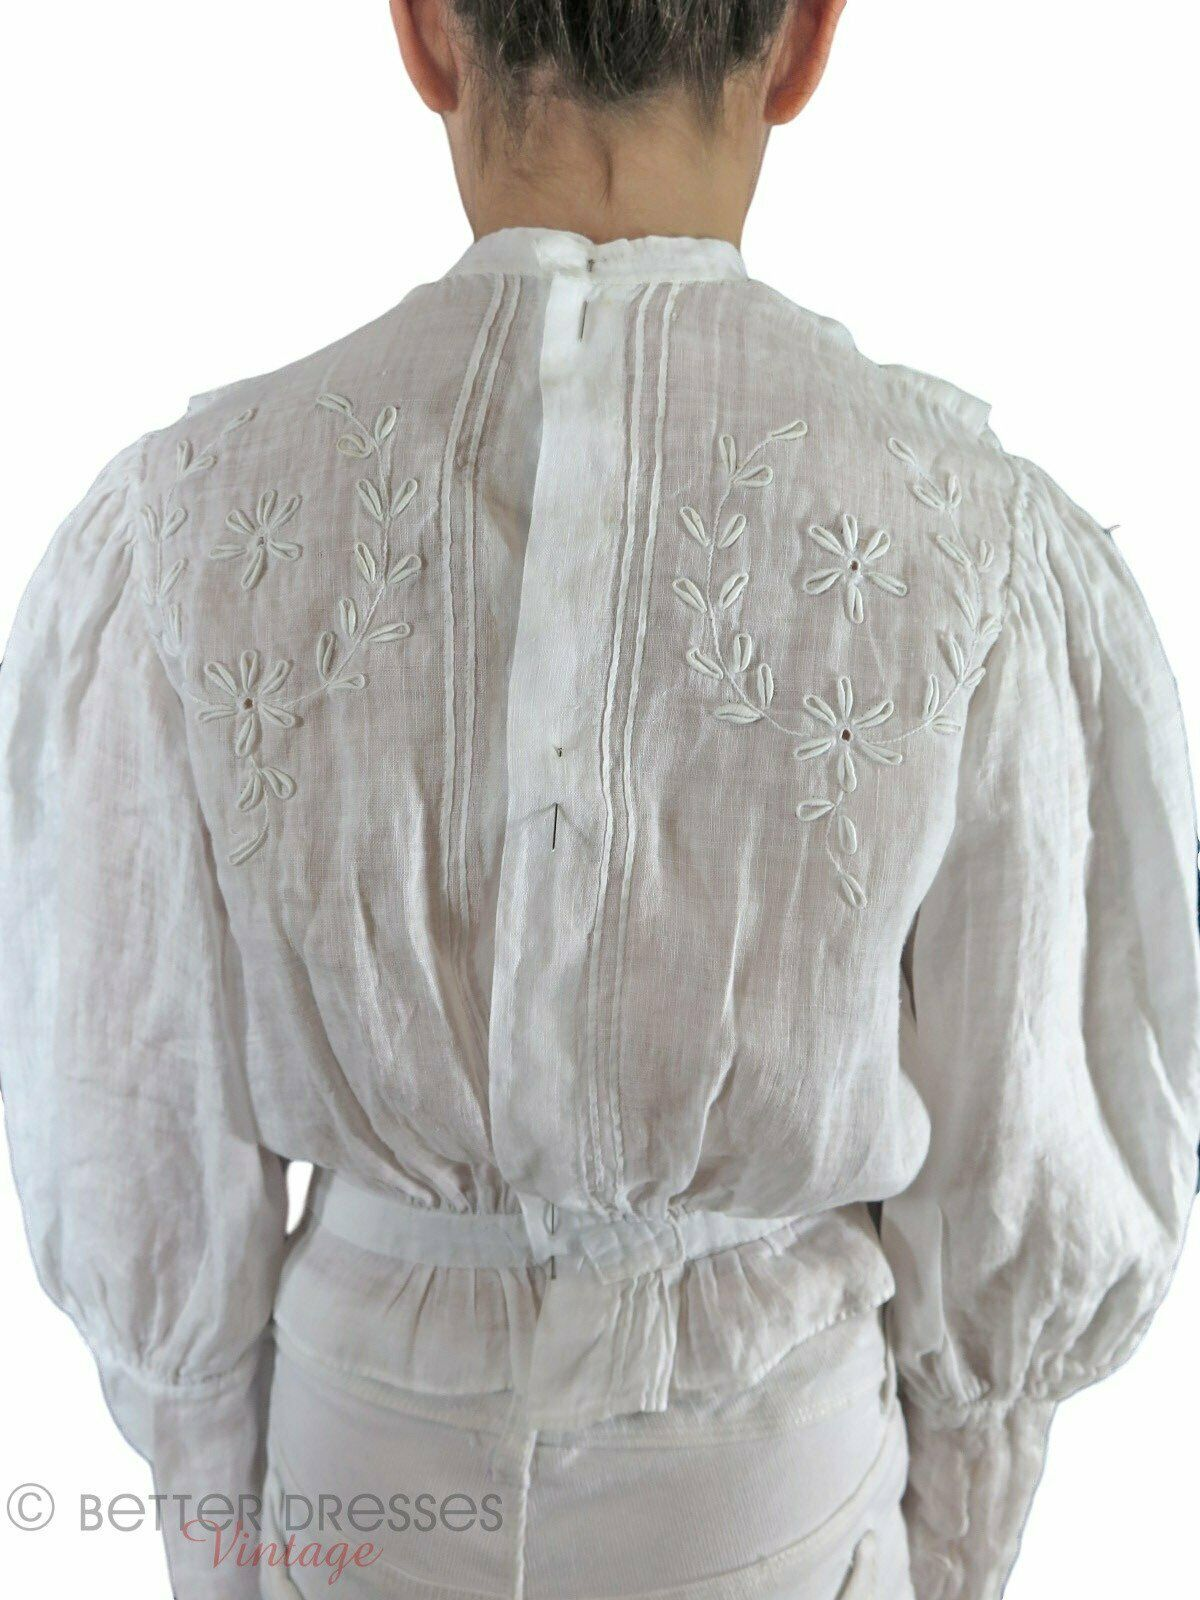 Antique Embroidered Blouse - xs, sm - image 4